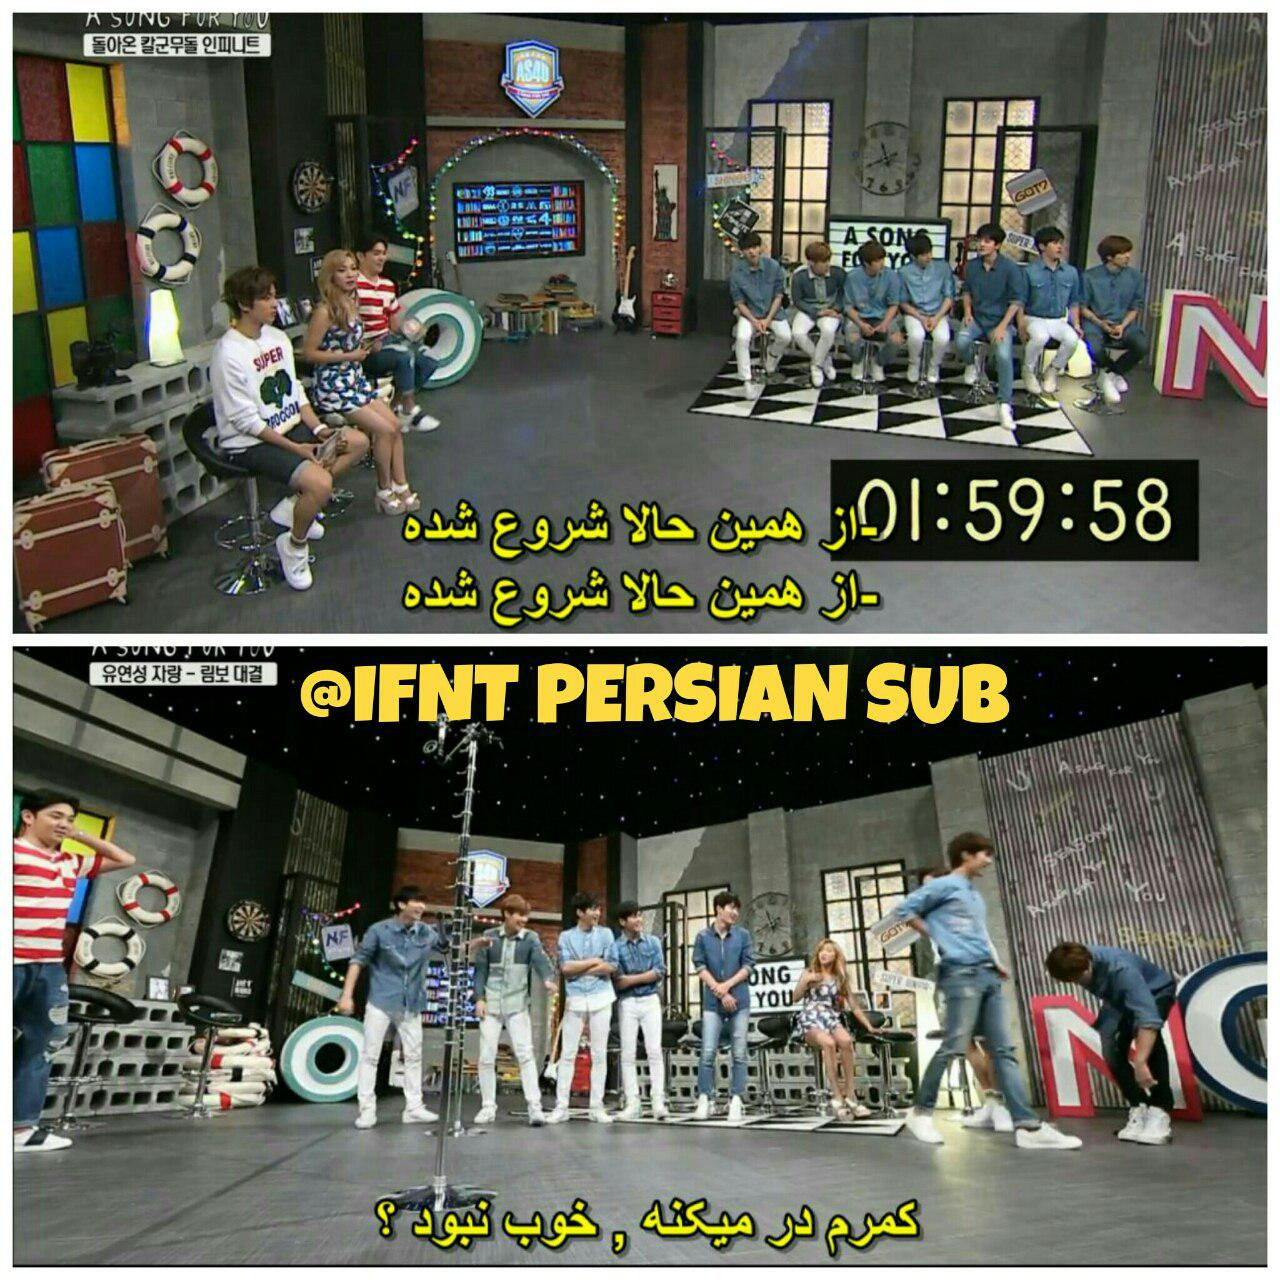 150809_A_Song_For_You_4 (INFINITE + PERSIAN SUB